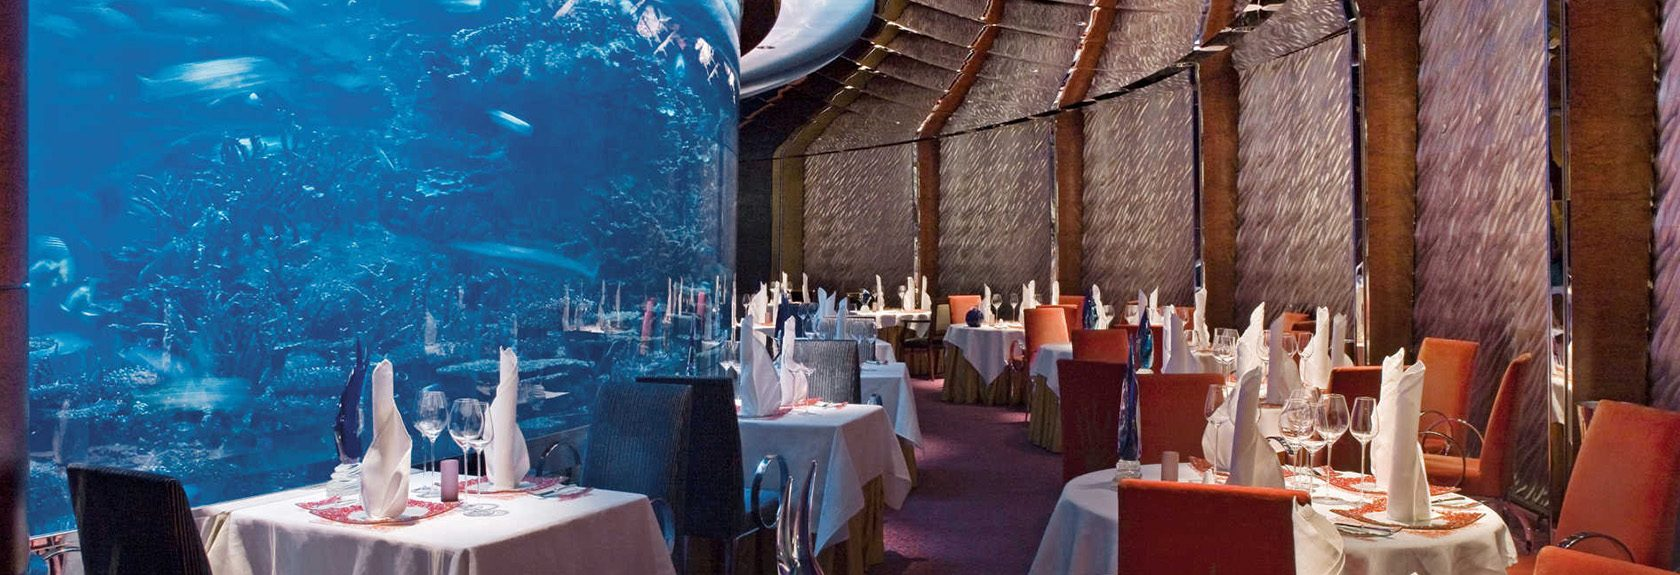 Lunch and dining at the the Burj al Arab